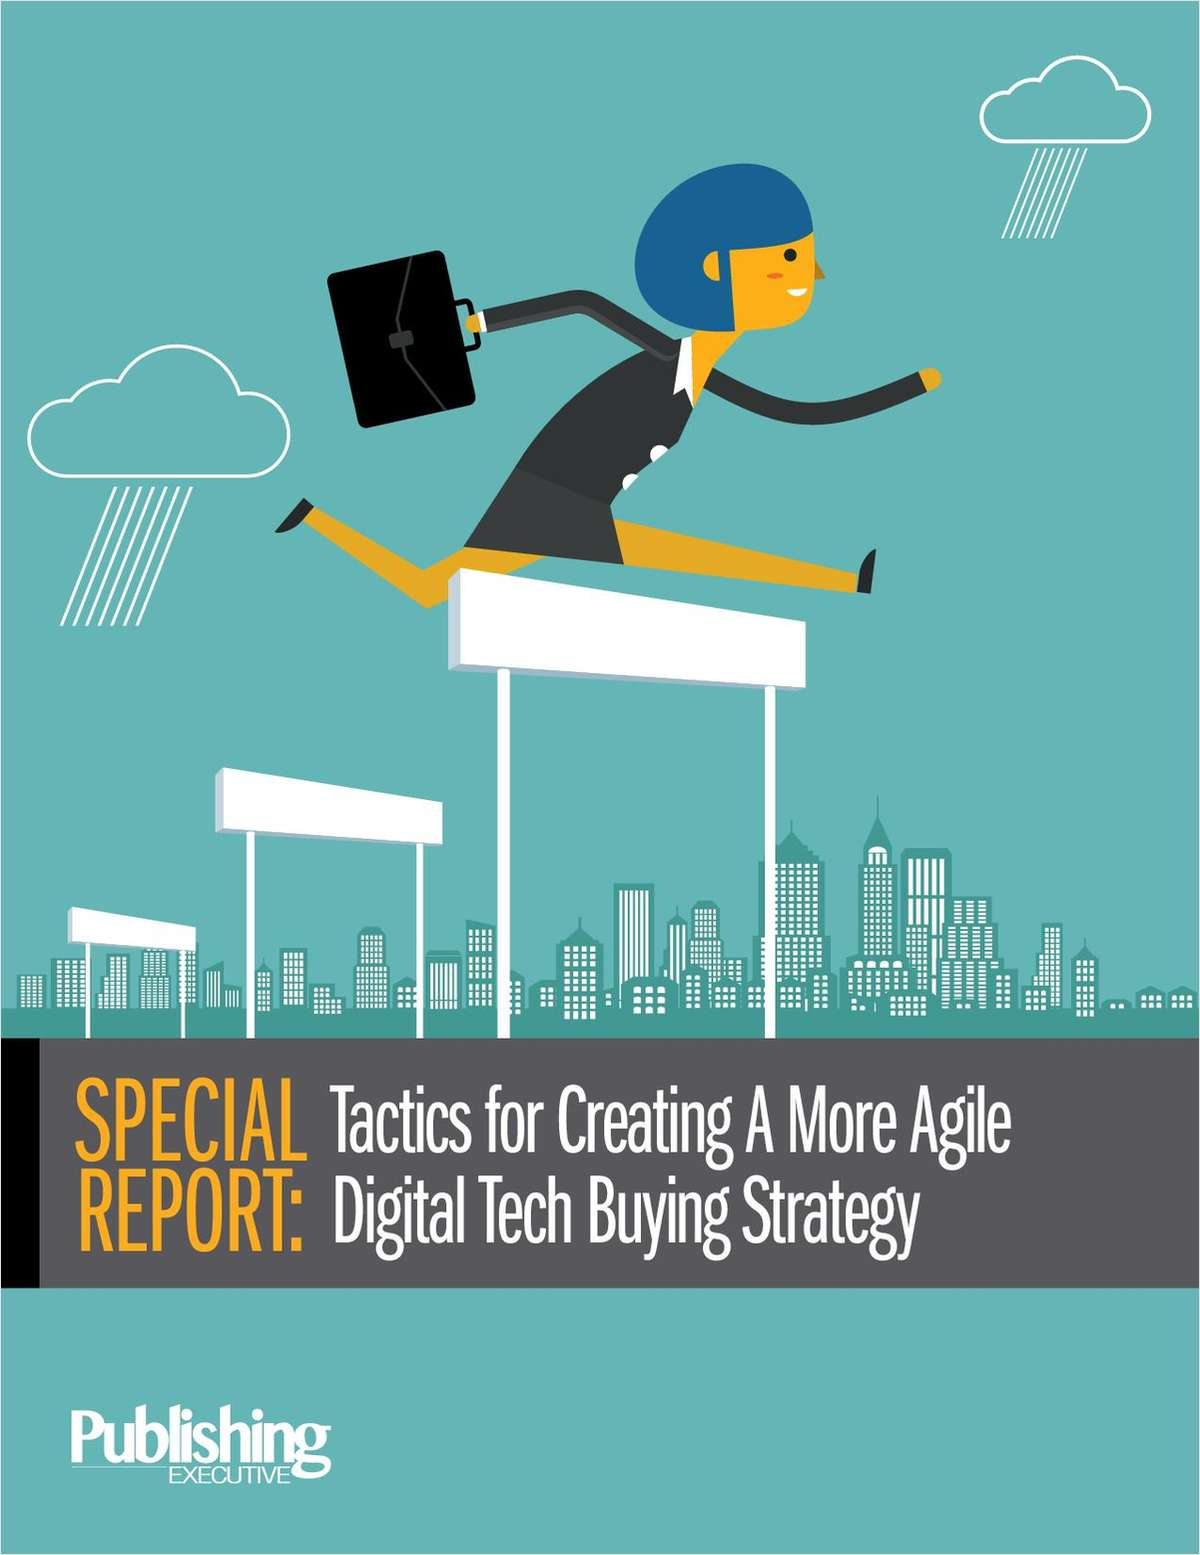 Special Report: Tactics for Creating a More Agile Digital Tech Buying Strategy